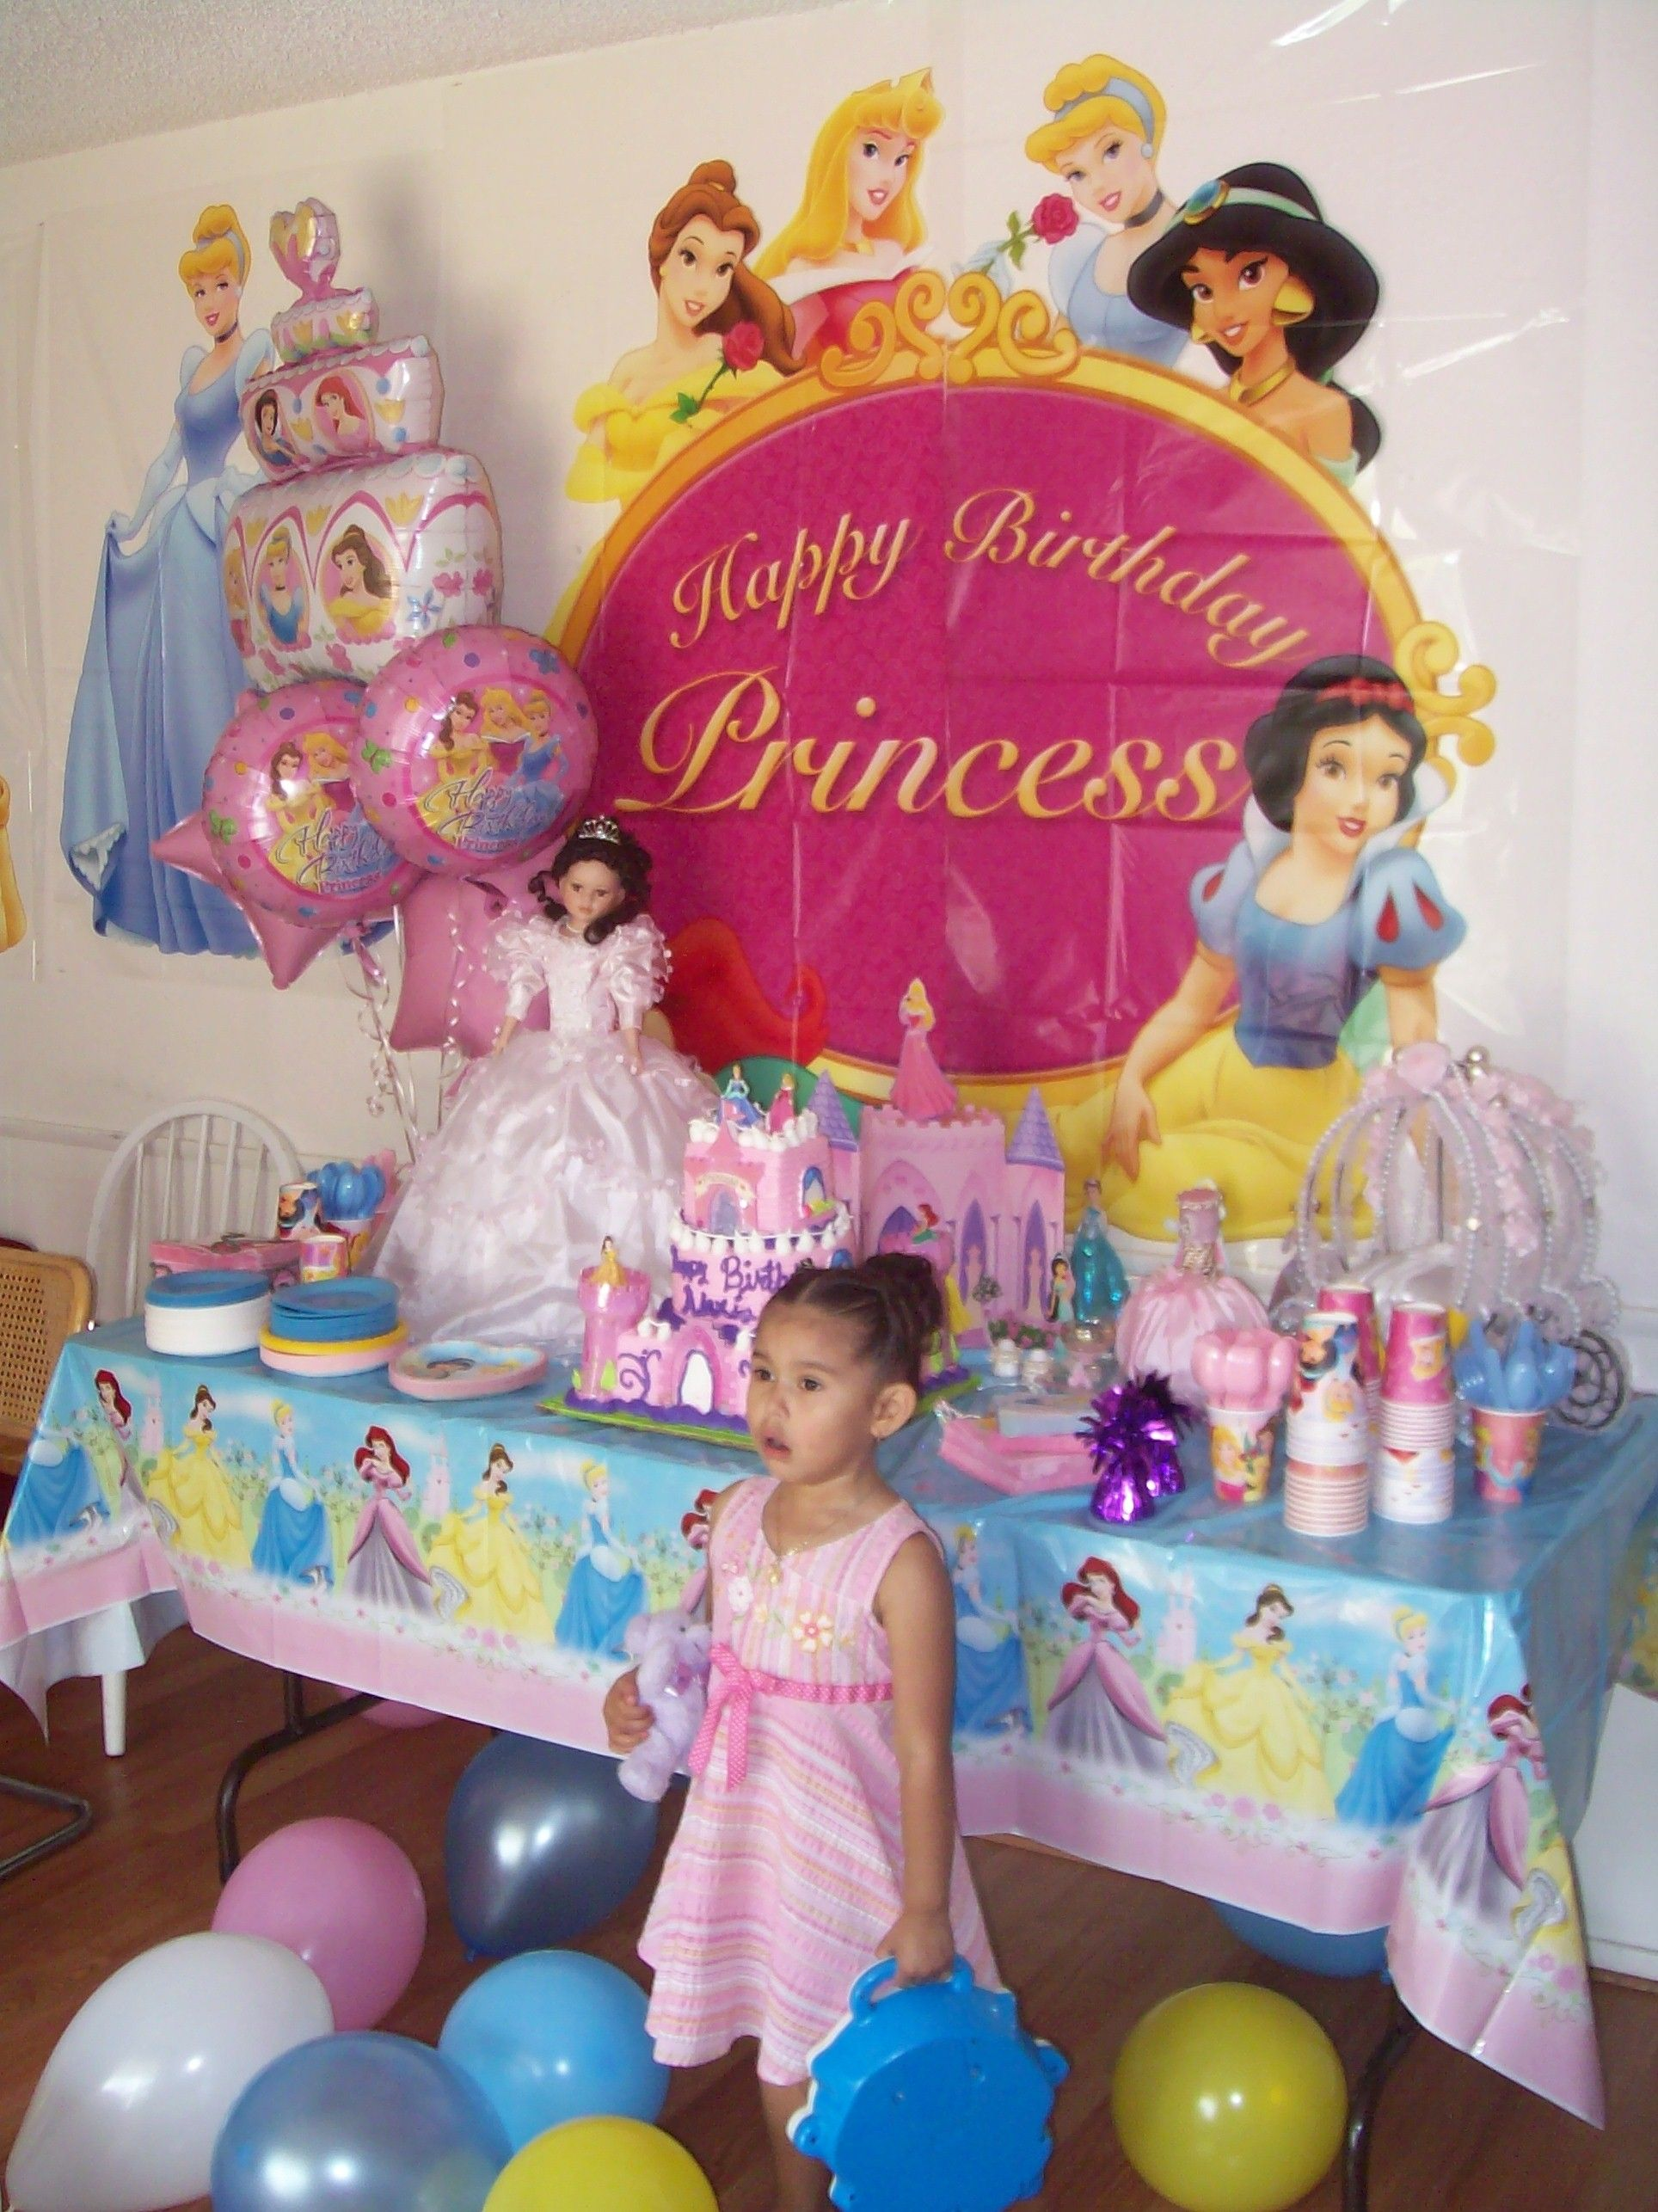 Disney Princess Cake Table Birthday Party Decor In 2019